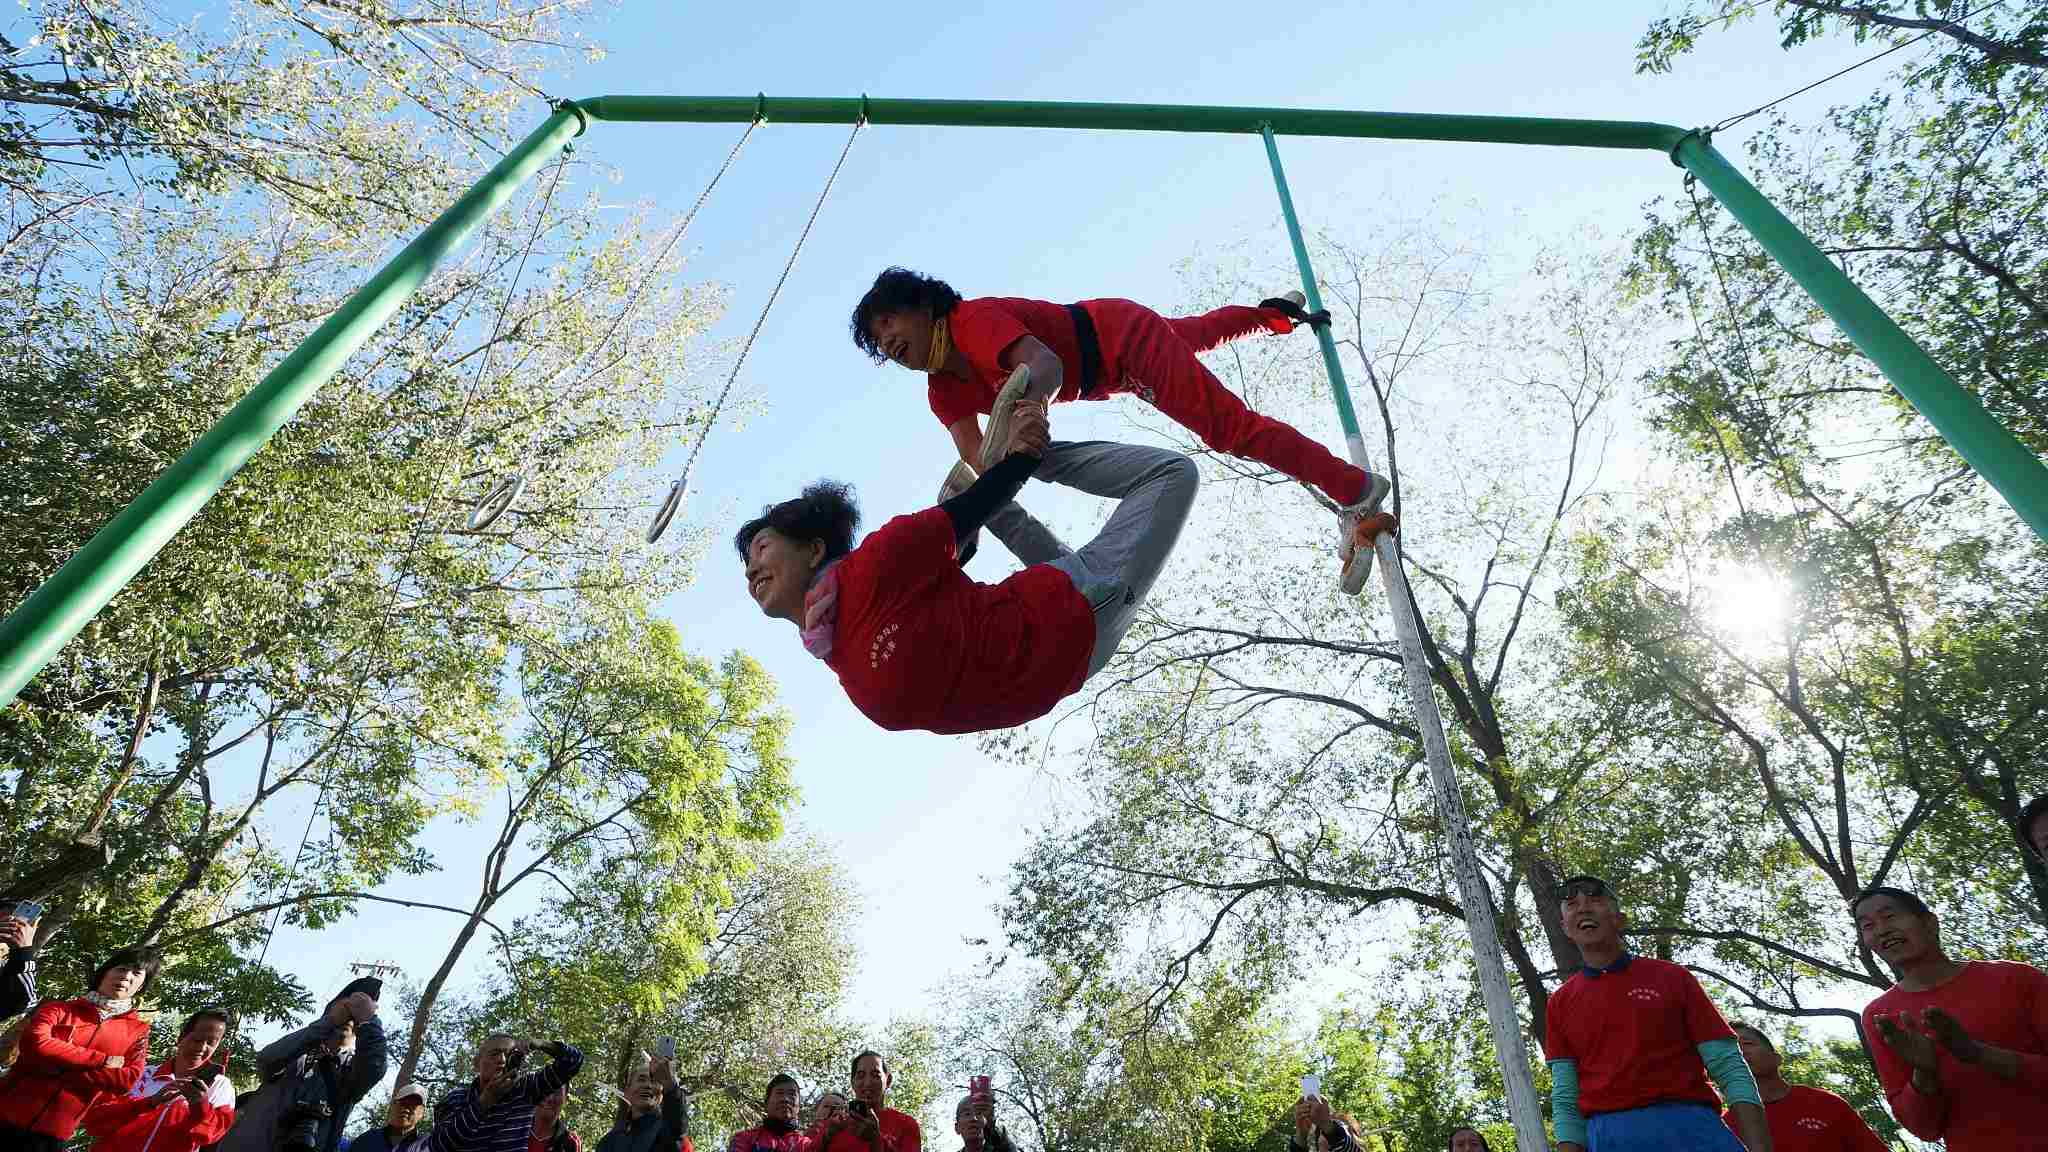 Chinese seniors show off gymnastic stunts at 'Elderly Olympics Games'